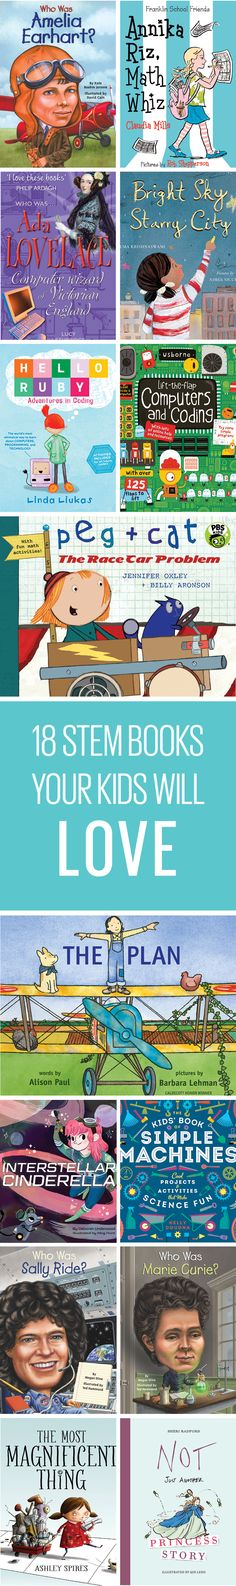 STEM stands for science, technology, engineering and math, get your little one started on the right path with these #STEM books.